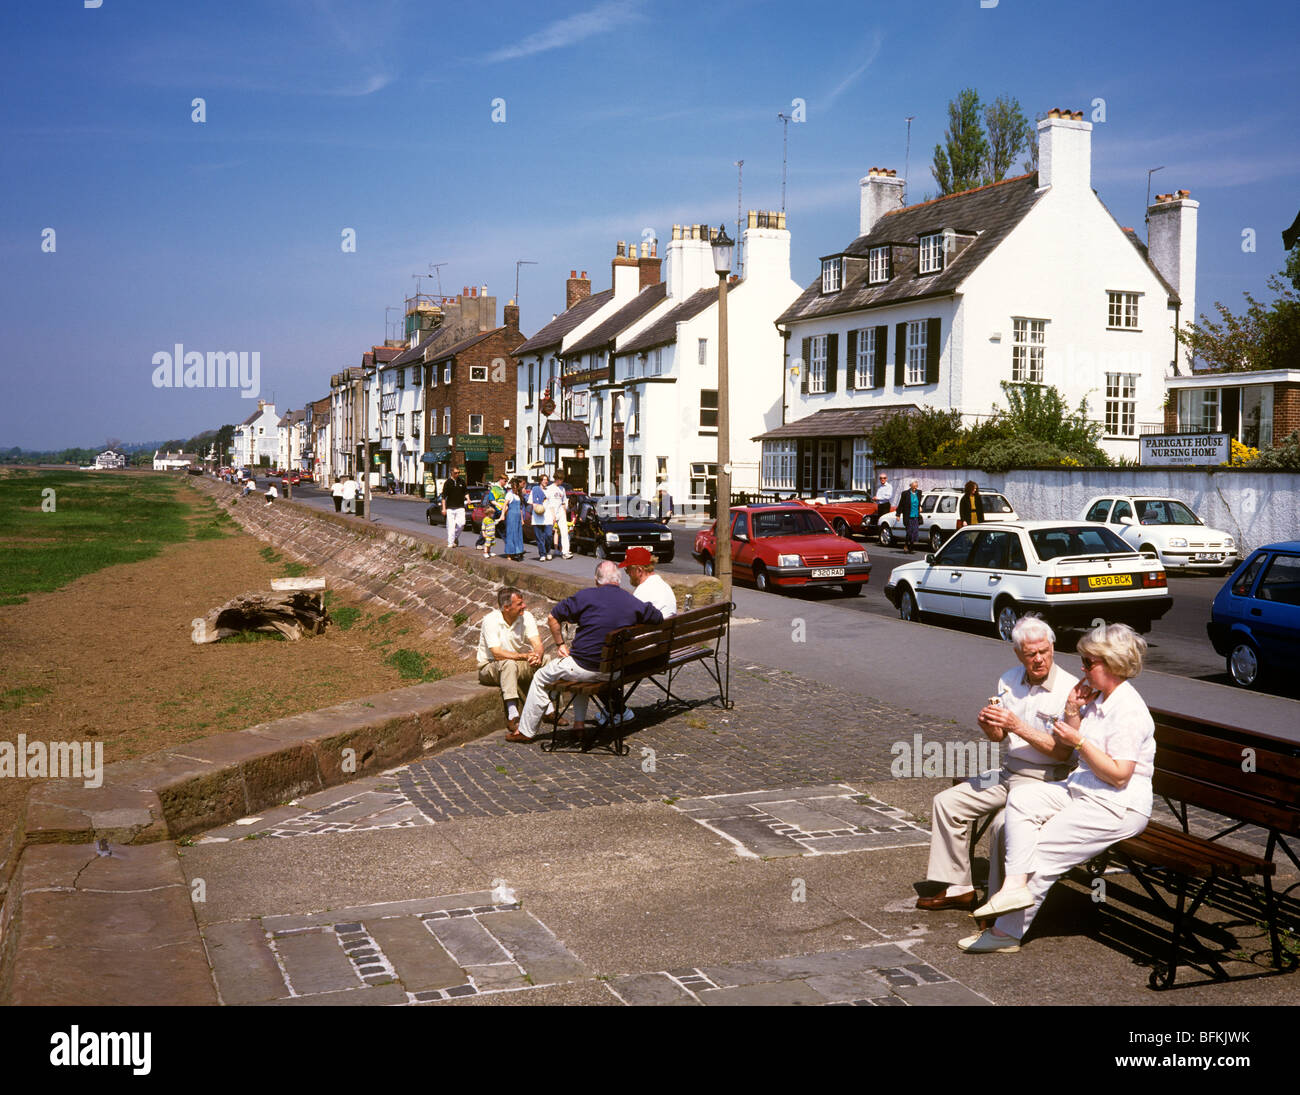 UK England Wirral Parkgate Promenade People Eating Ice Creams Sitting In Sunshine